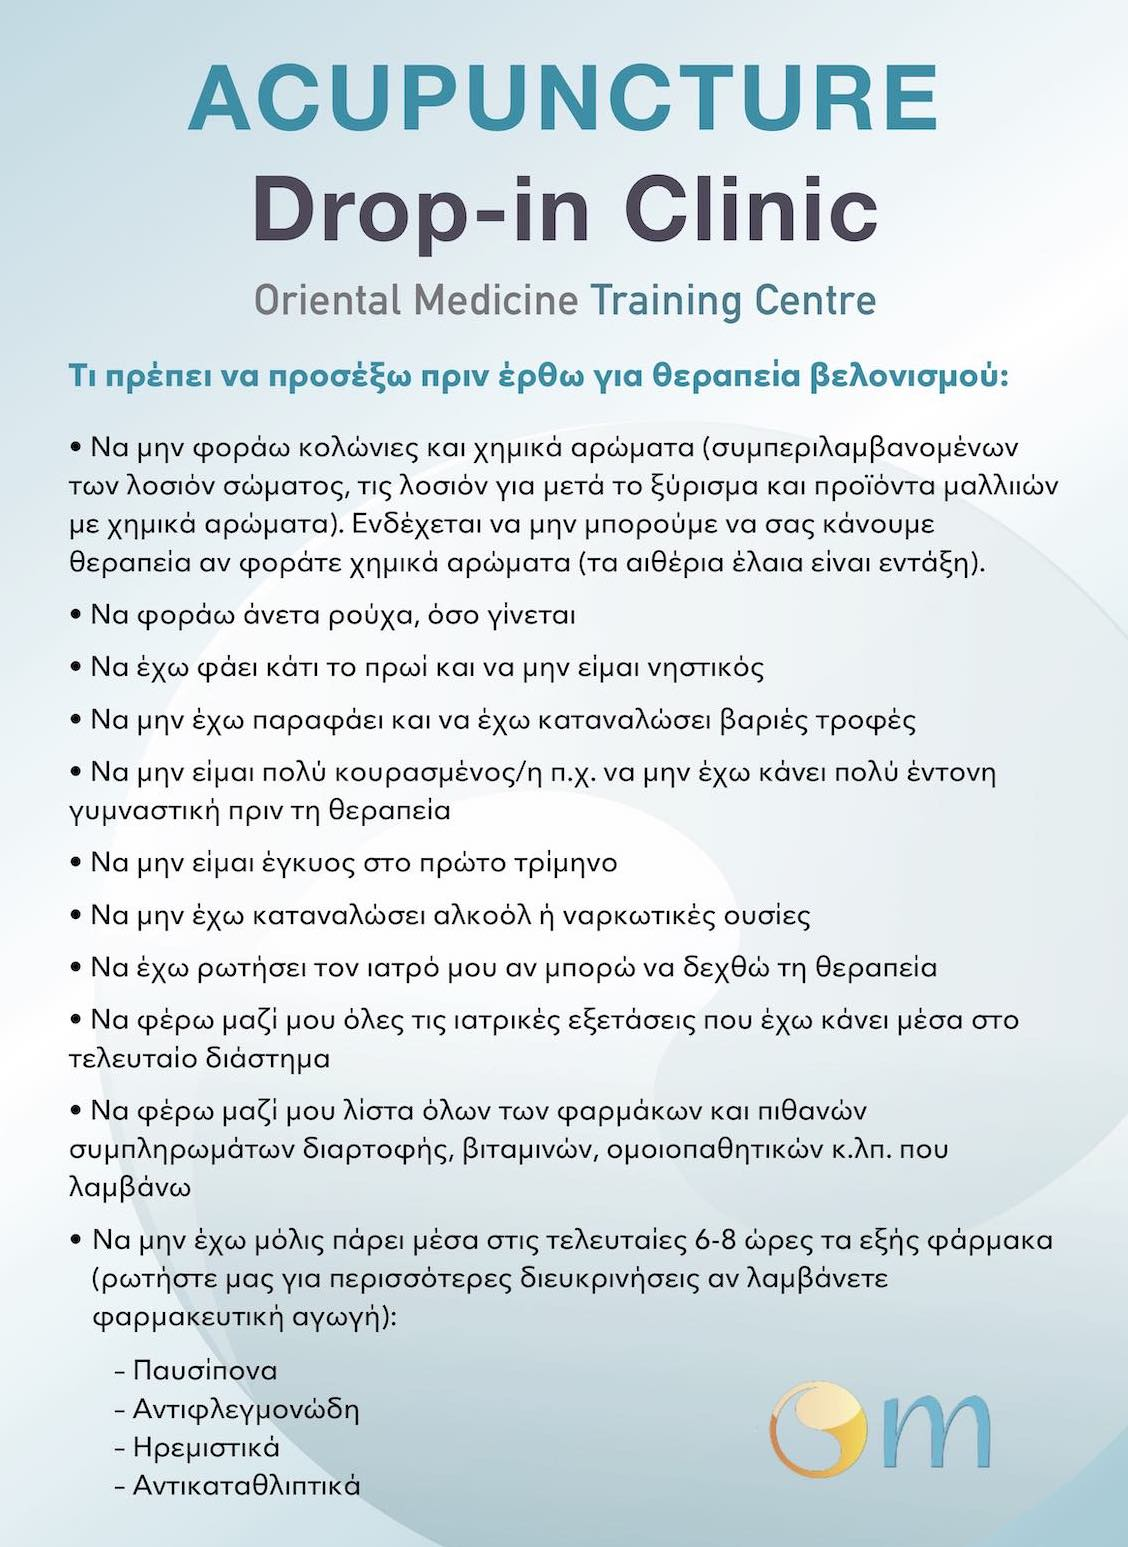 om_drop-in_clinic_notes